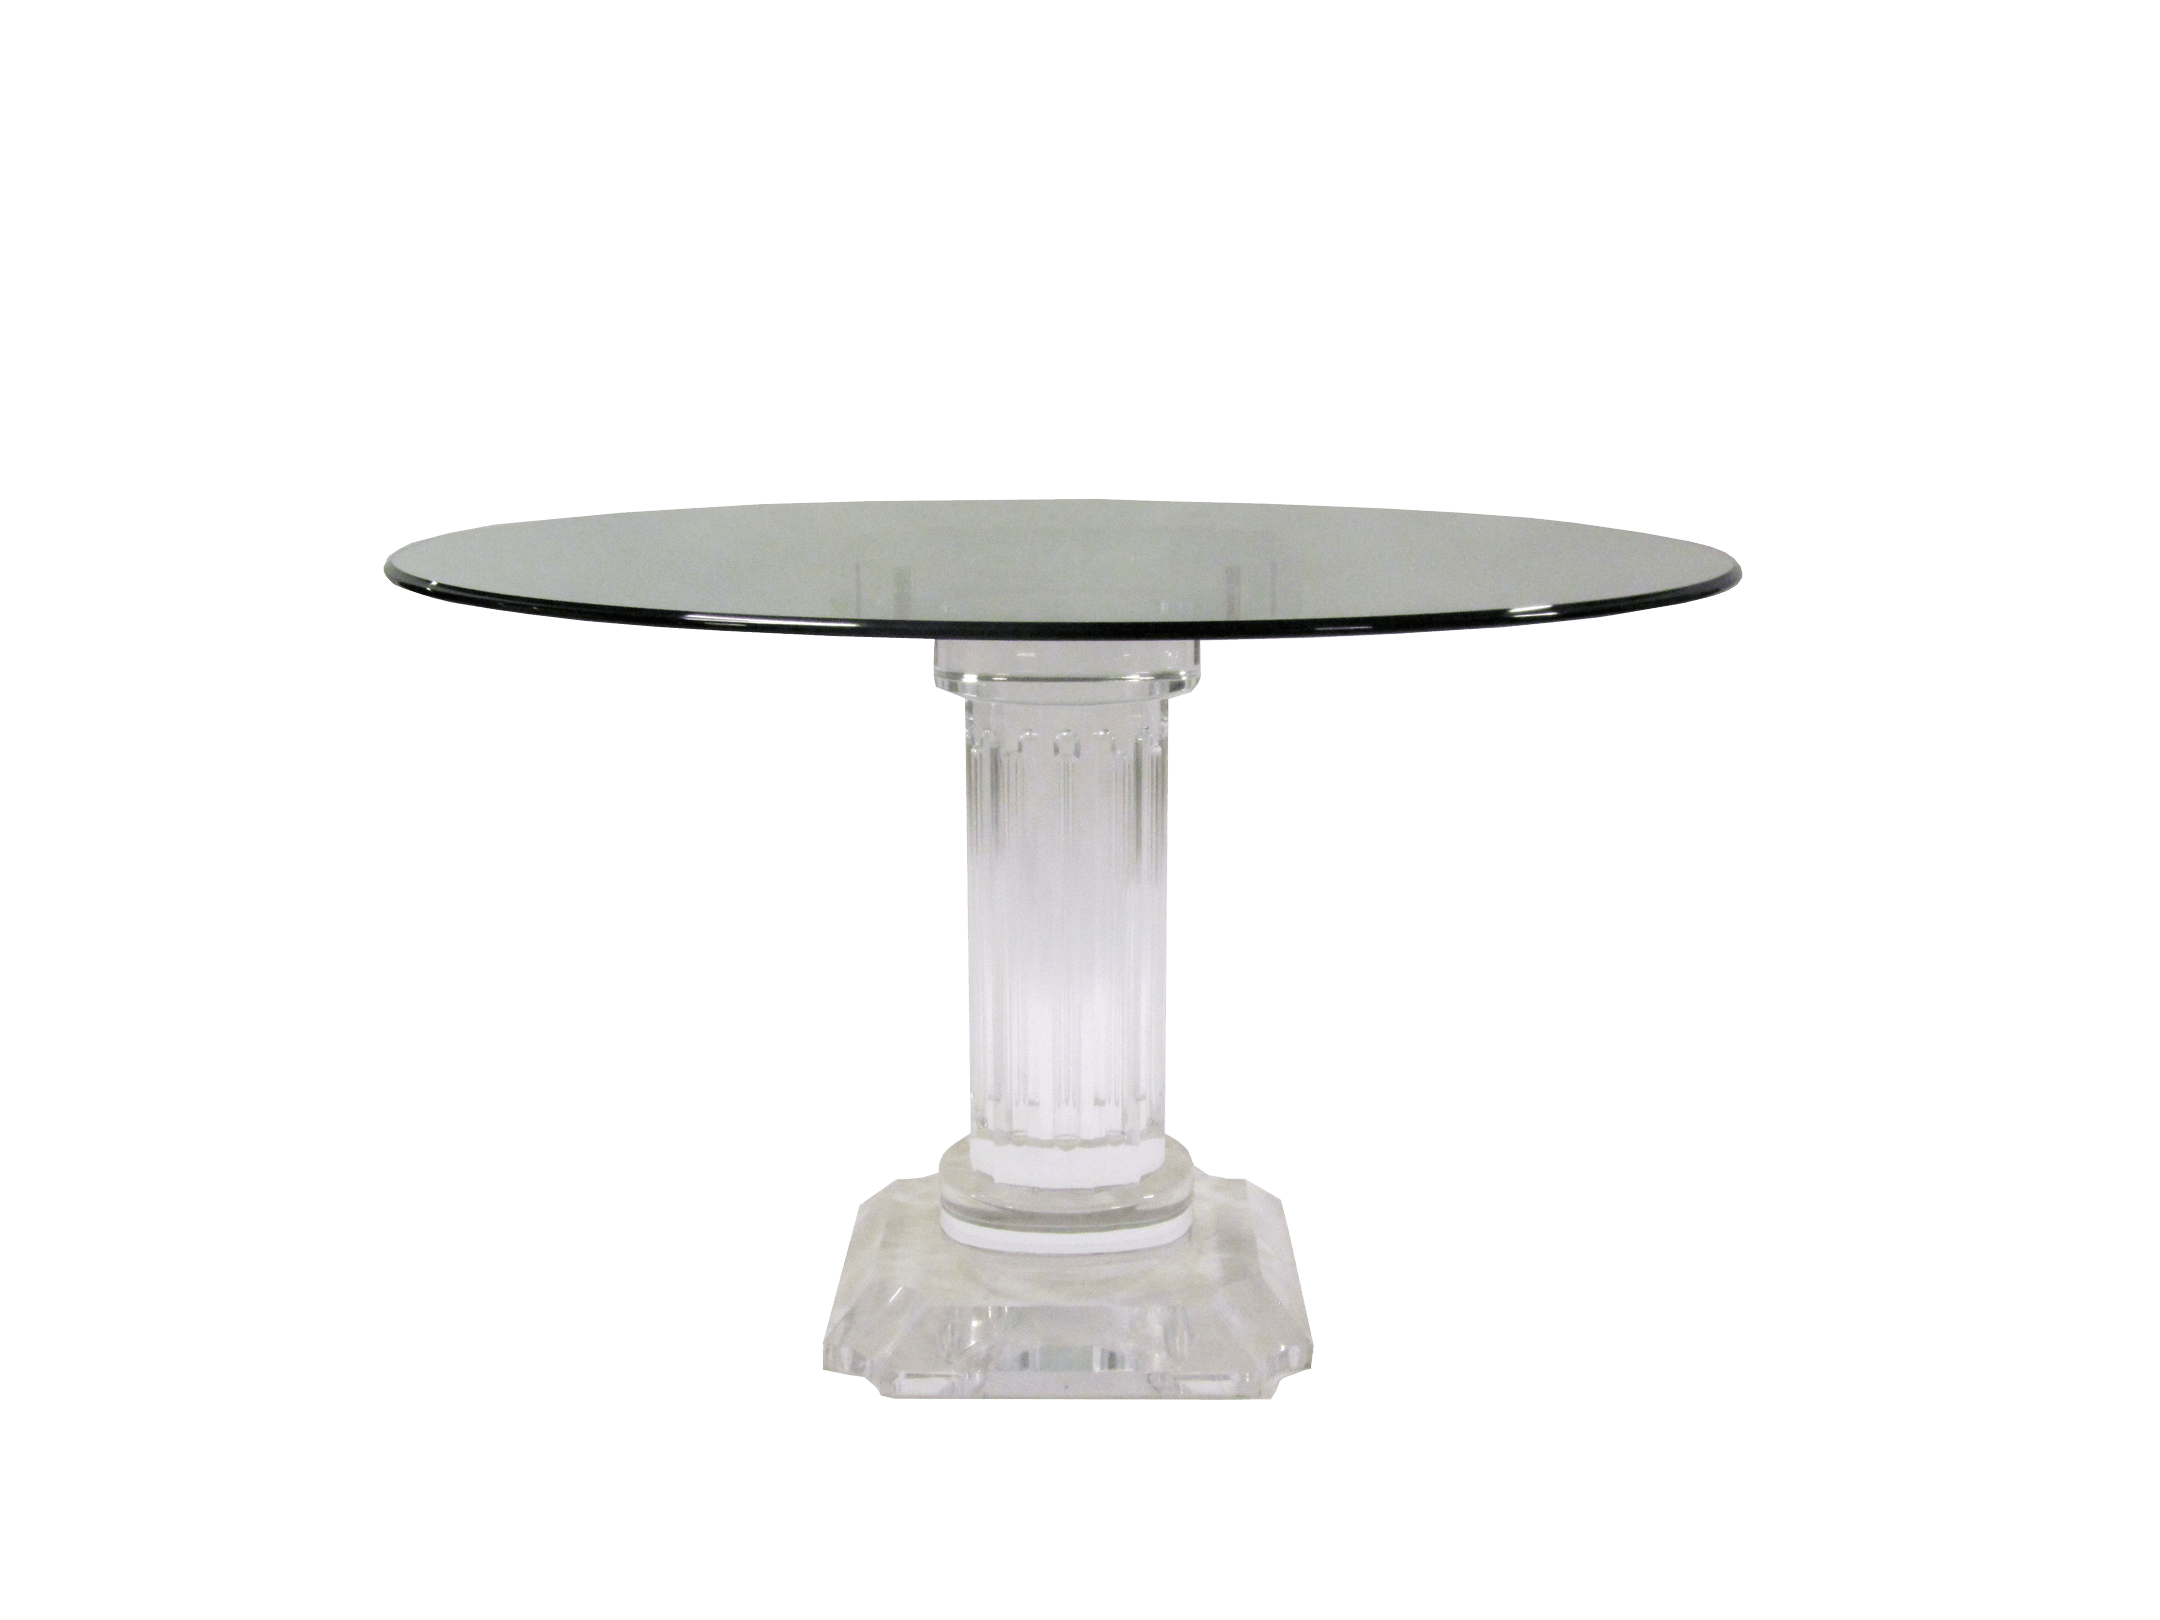 Rome Acrylic Dining Table Kdrshowrooms Com